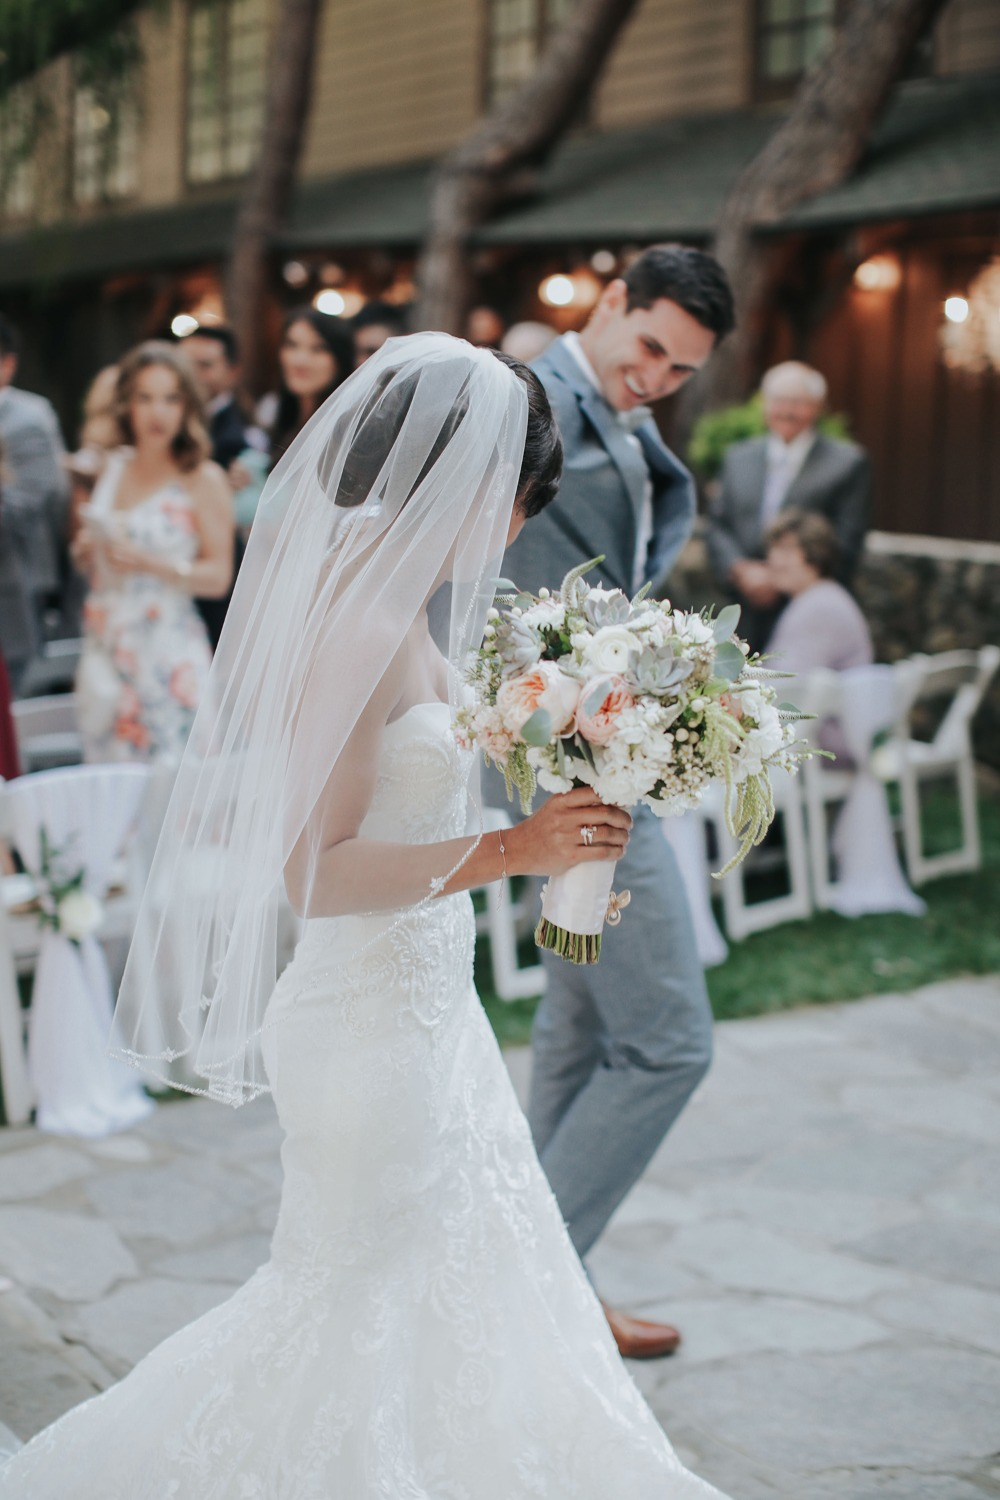 Rustic Never Looked So Glamorous At This Calamigos Ranch Wedding gallery rustic never looked so glamorous at this